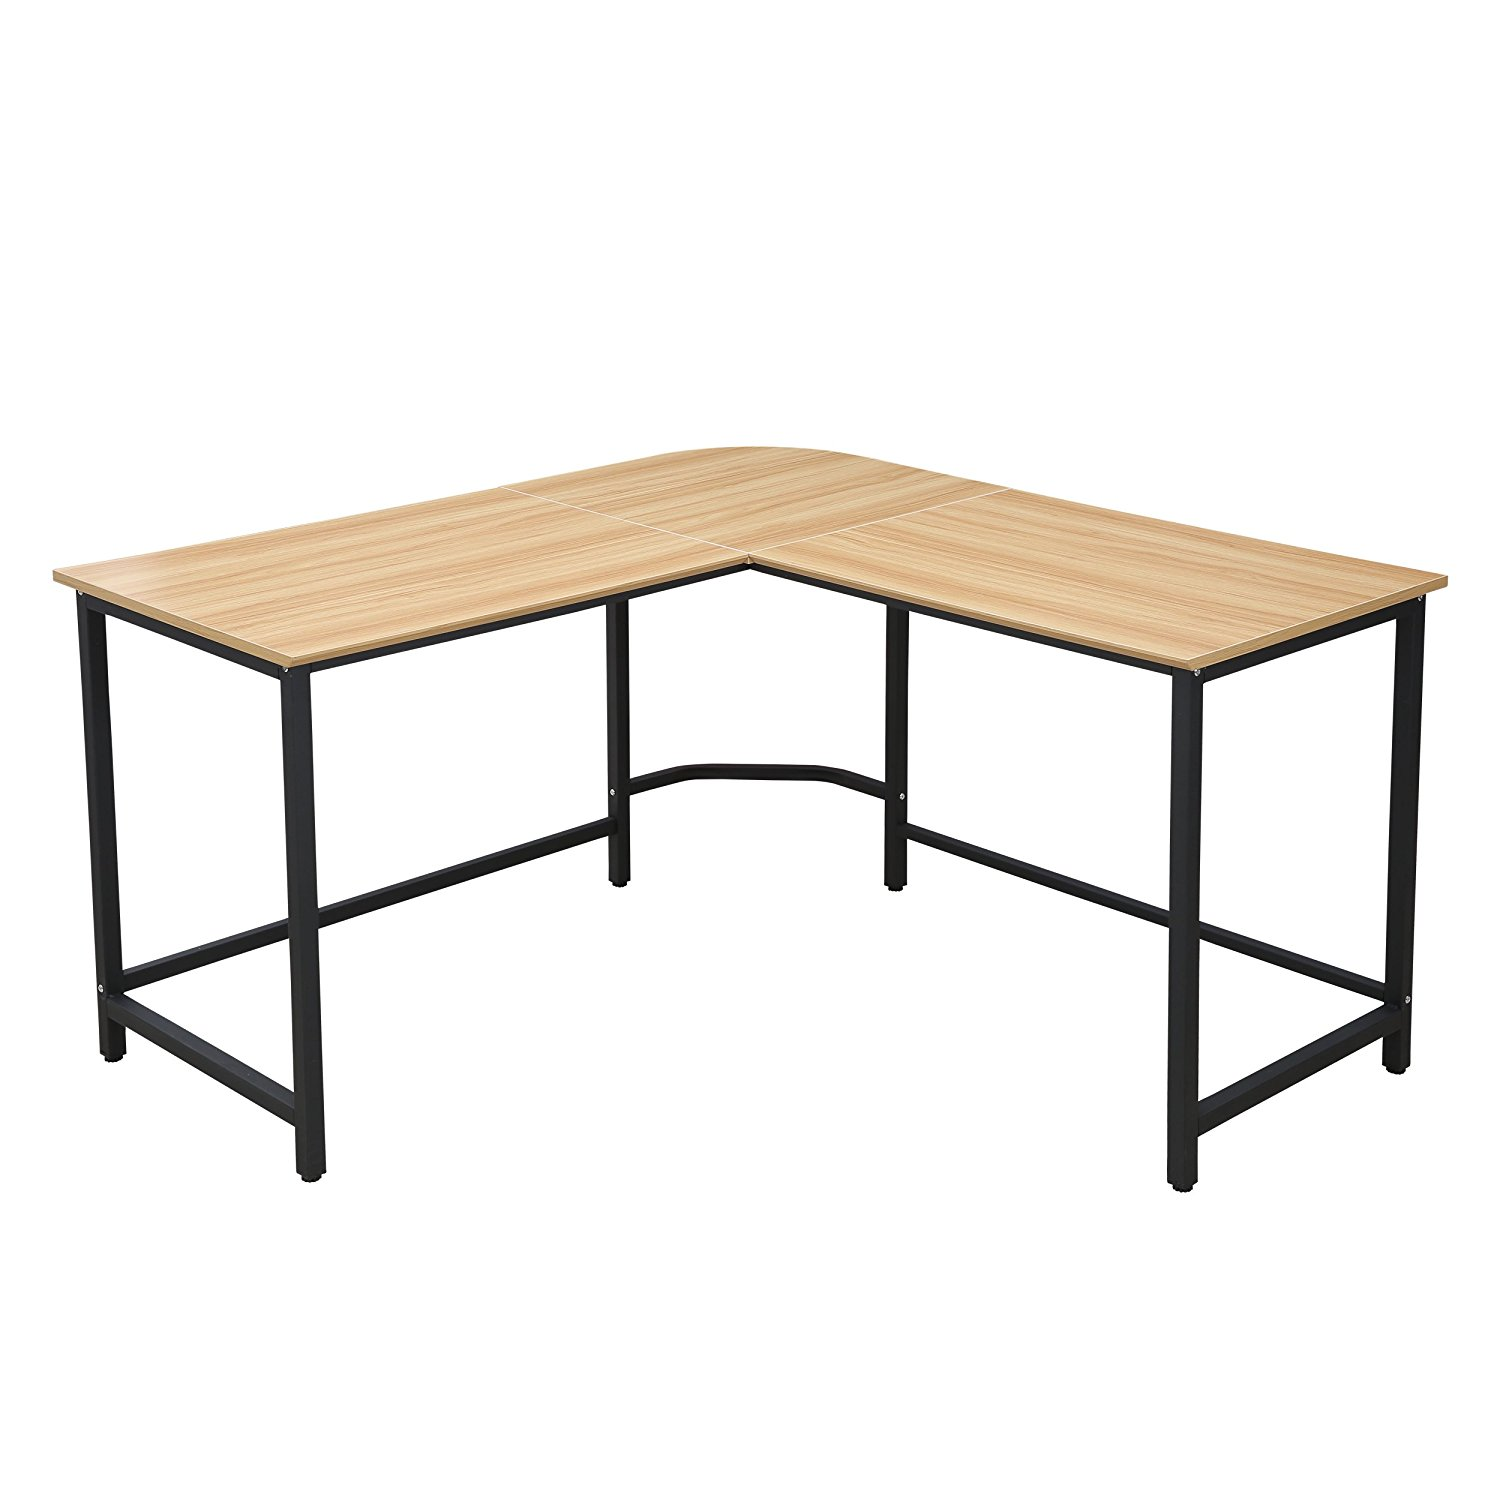 Poly and Bark Tristan Compact L-Shaped Office Desk in Natural, Black